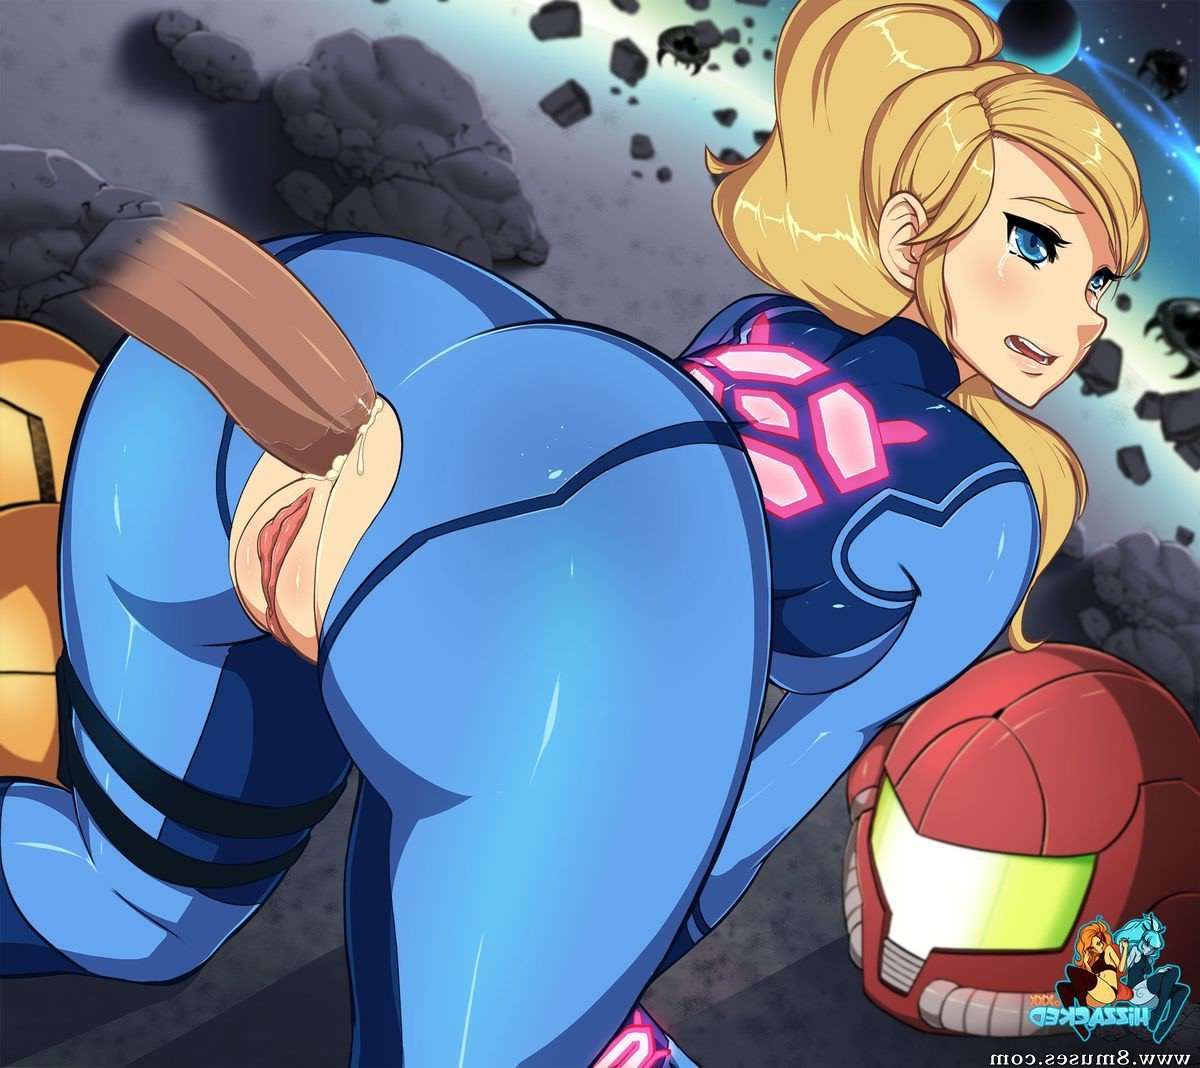 Hizzacked-Comics/Zero-Suit-Samus Zero_Suit_Samus__8muses_-_Sex_and_Porn_Comics_4.jpg